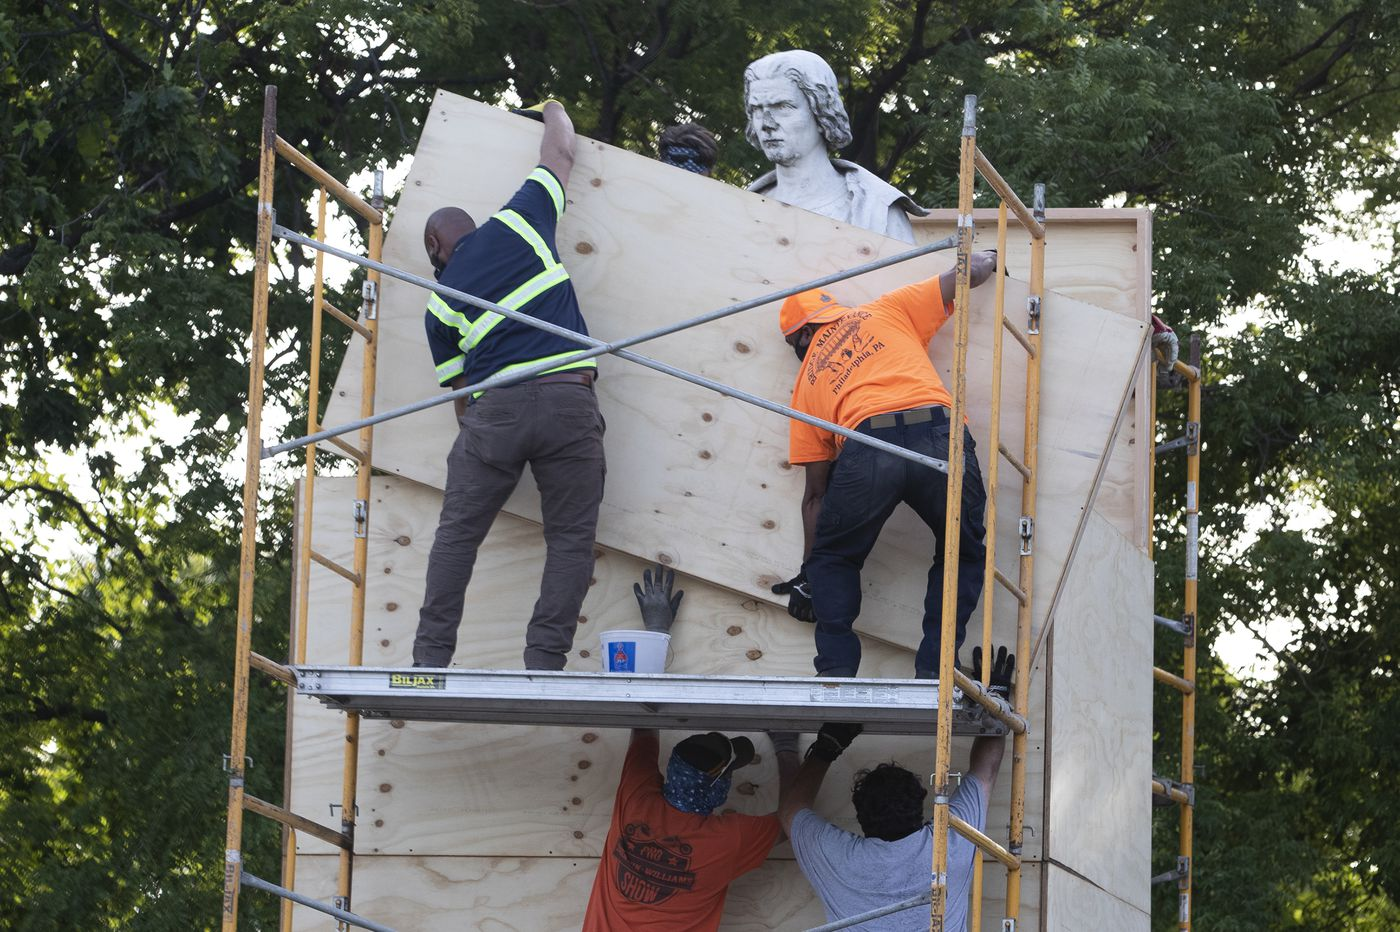 Racist statues belong in museums, not storage, to force us to face history | Opinion